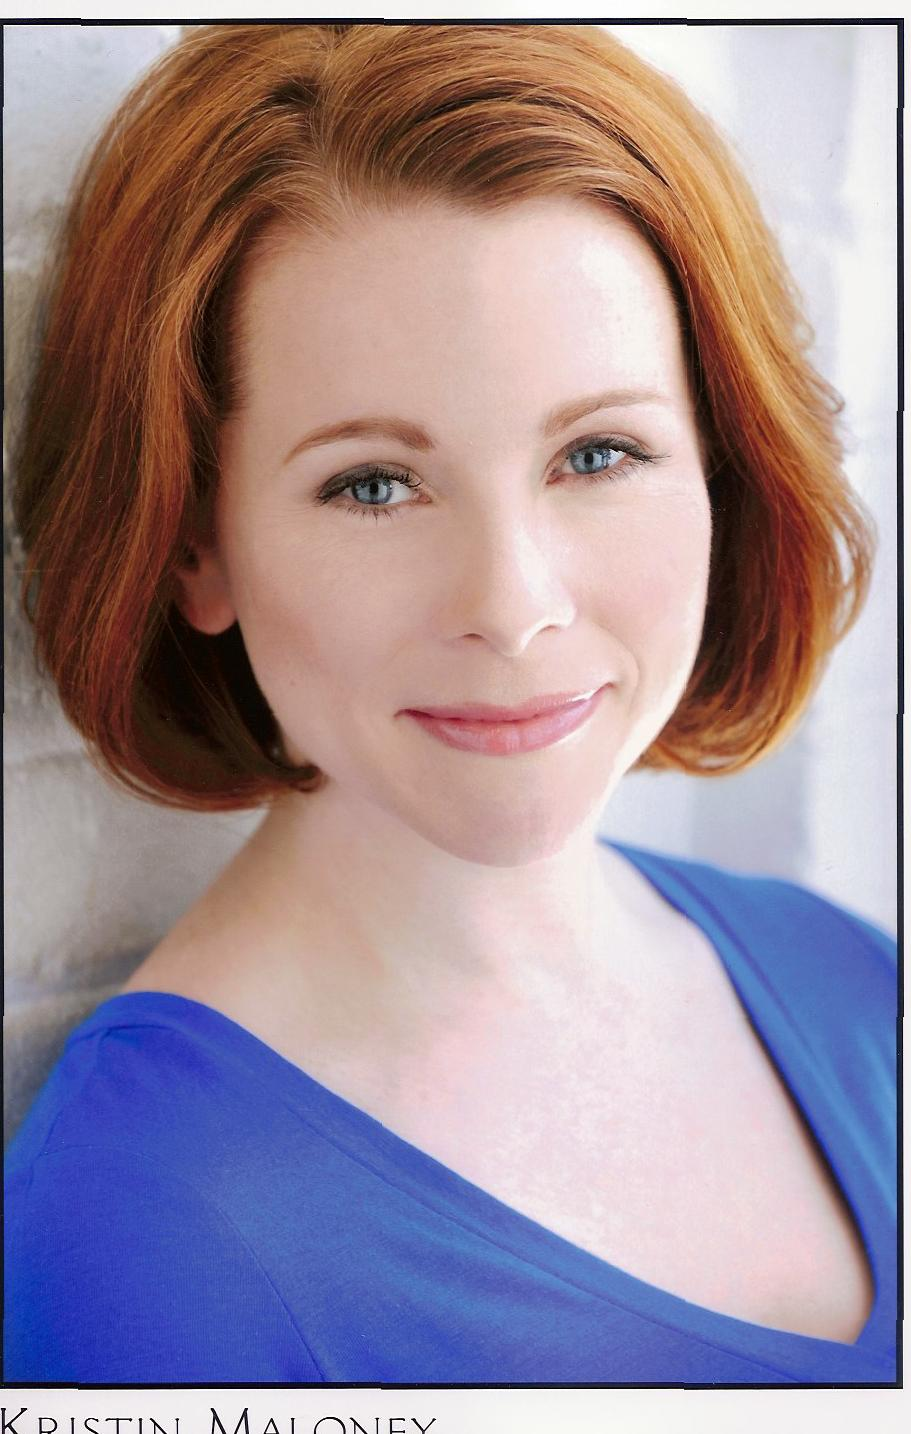 Kristin Maloney Headshot1.jpg